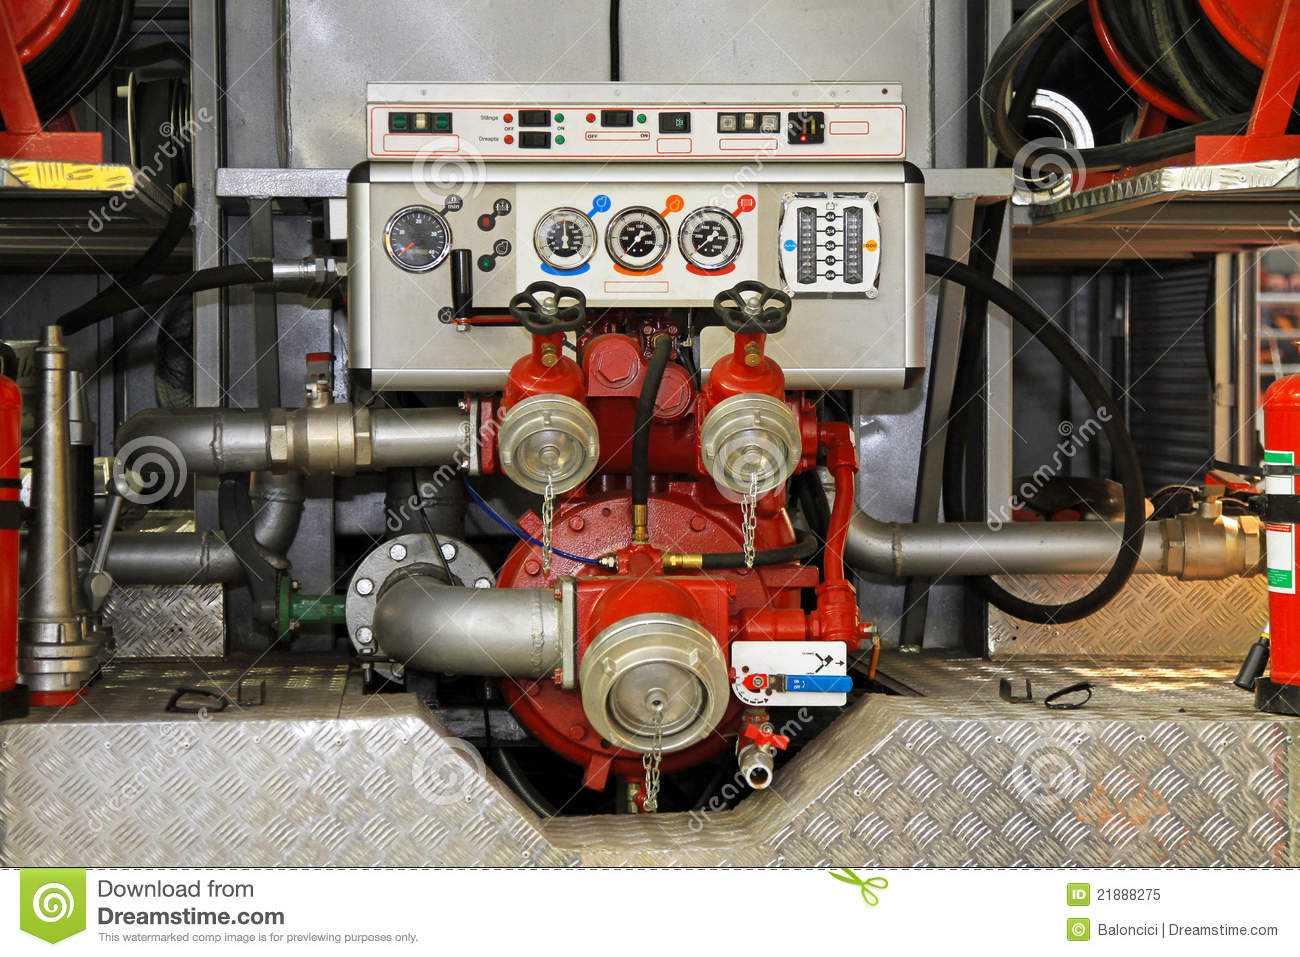 High Pressure Fire Truck : Fire engine water pumpo free image for user